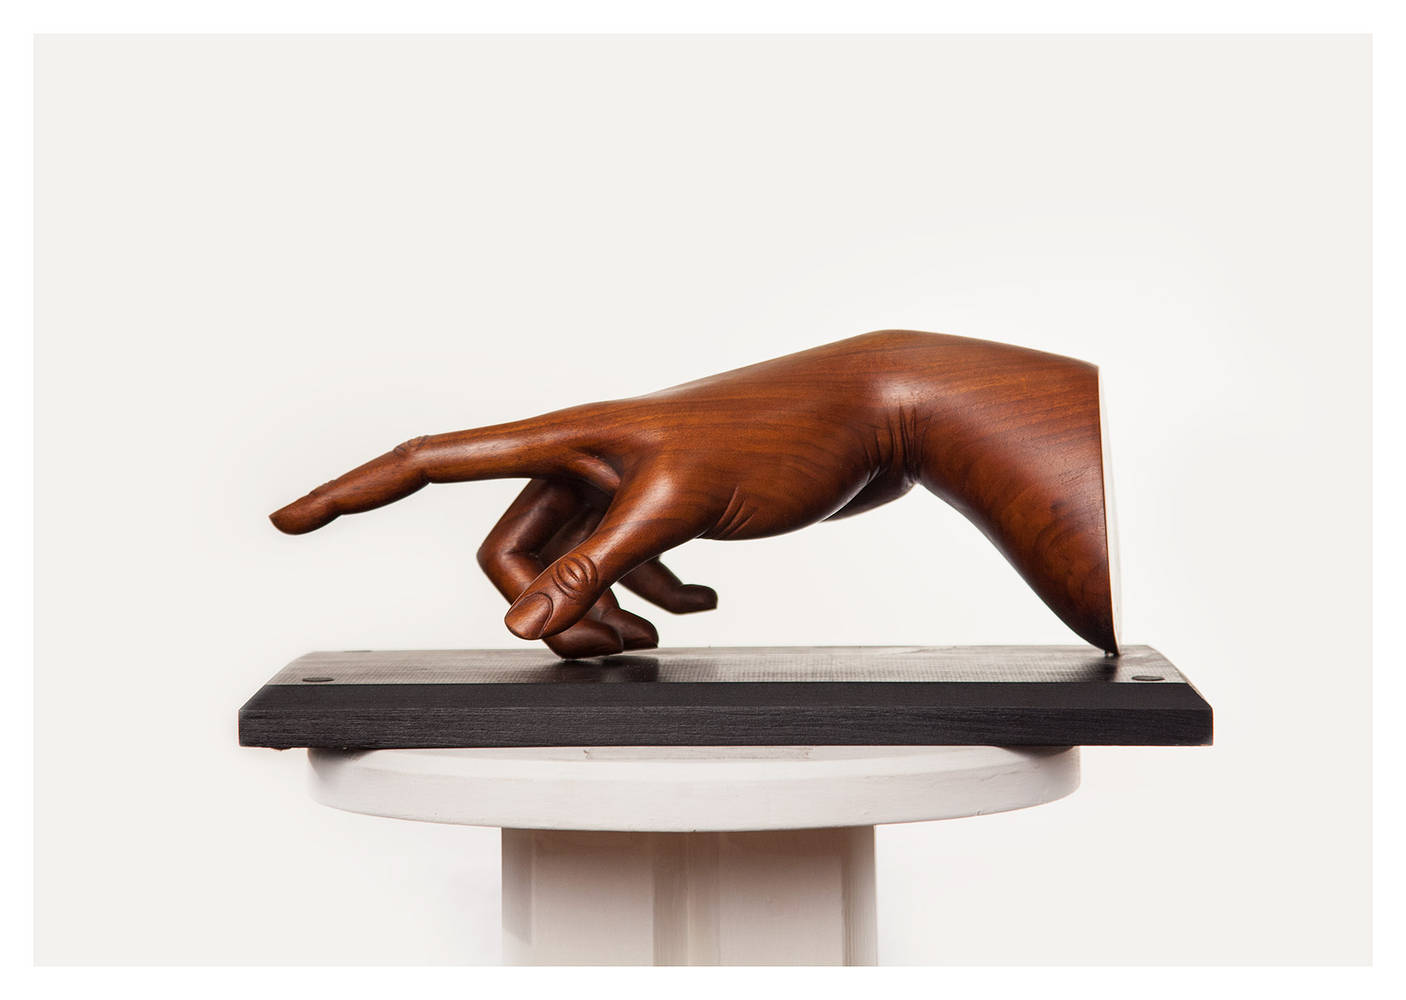 Colossal Hand, Walnut - 15 x 7 x 7 Inches by Larry Scaturro